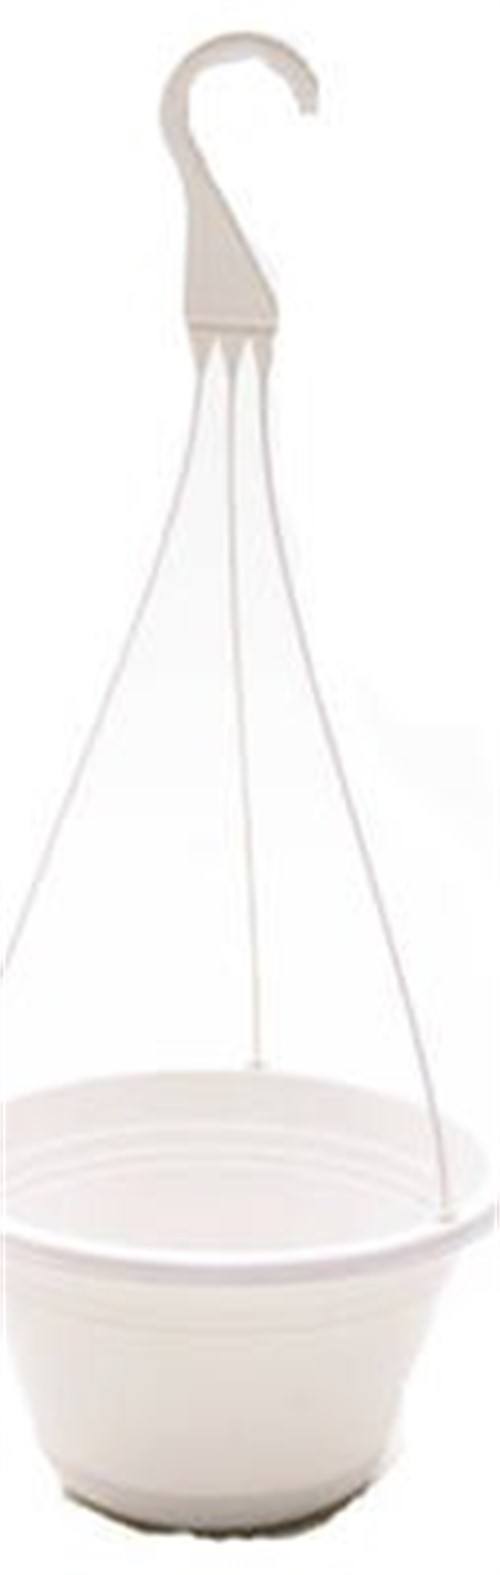 Att Southern HW1224WH 12-Inch White Hanging Basket Planter by ATT SOUTHERN INC